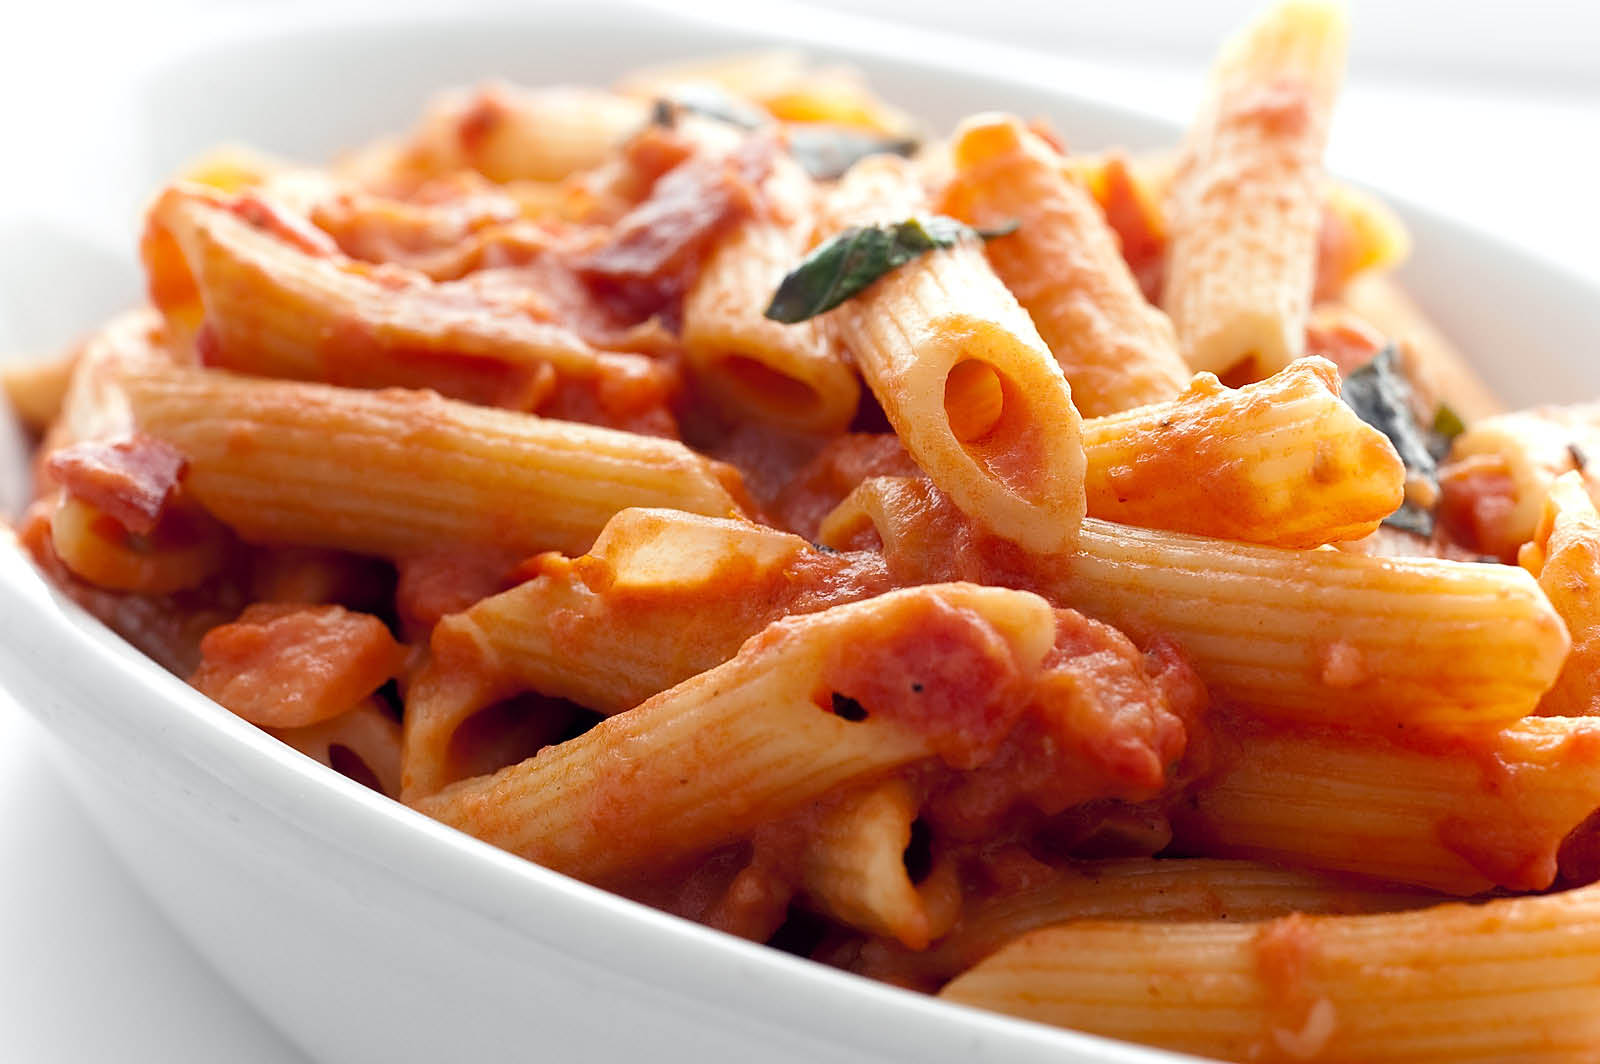 Italian Food Near Me - Coupons for Authentic Italian Meals - Italy Food Nutley, NJ - Pasta in Nutley, NJ - Best Pasta in New Jersey